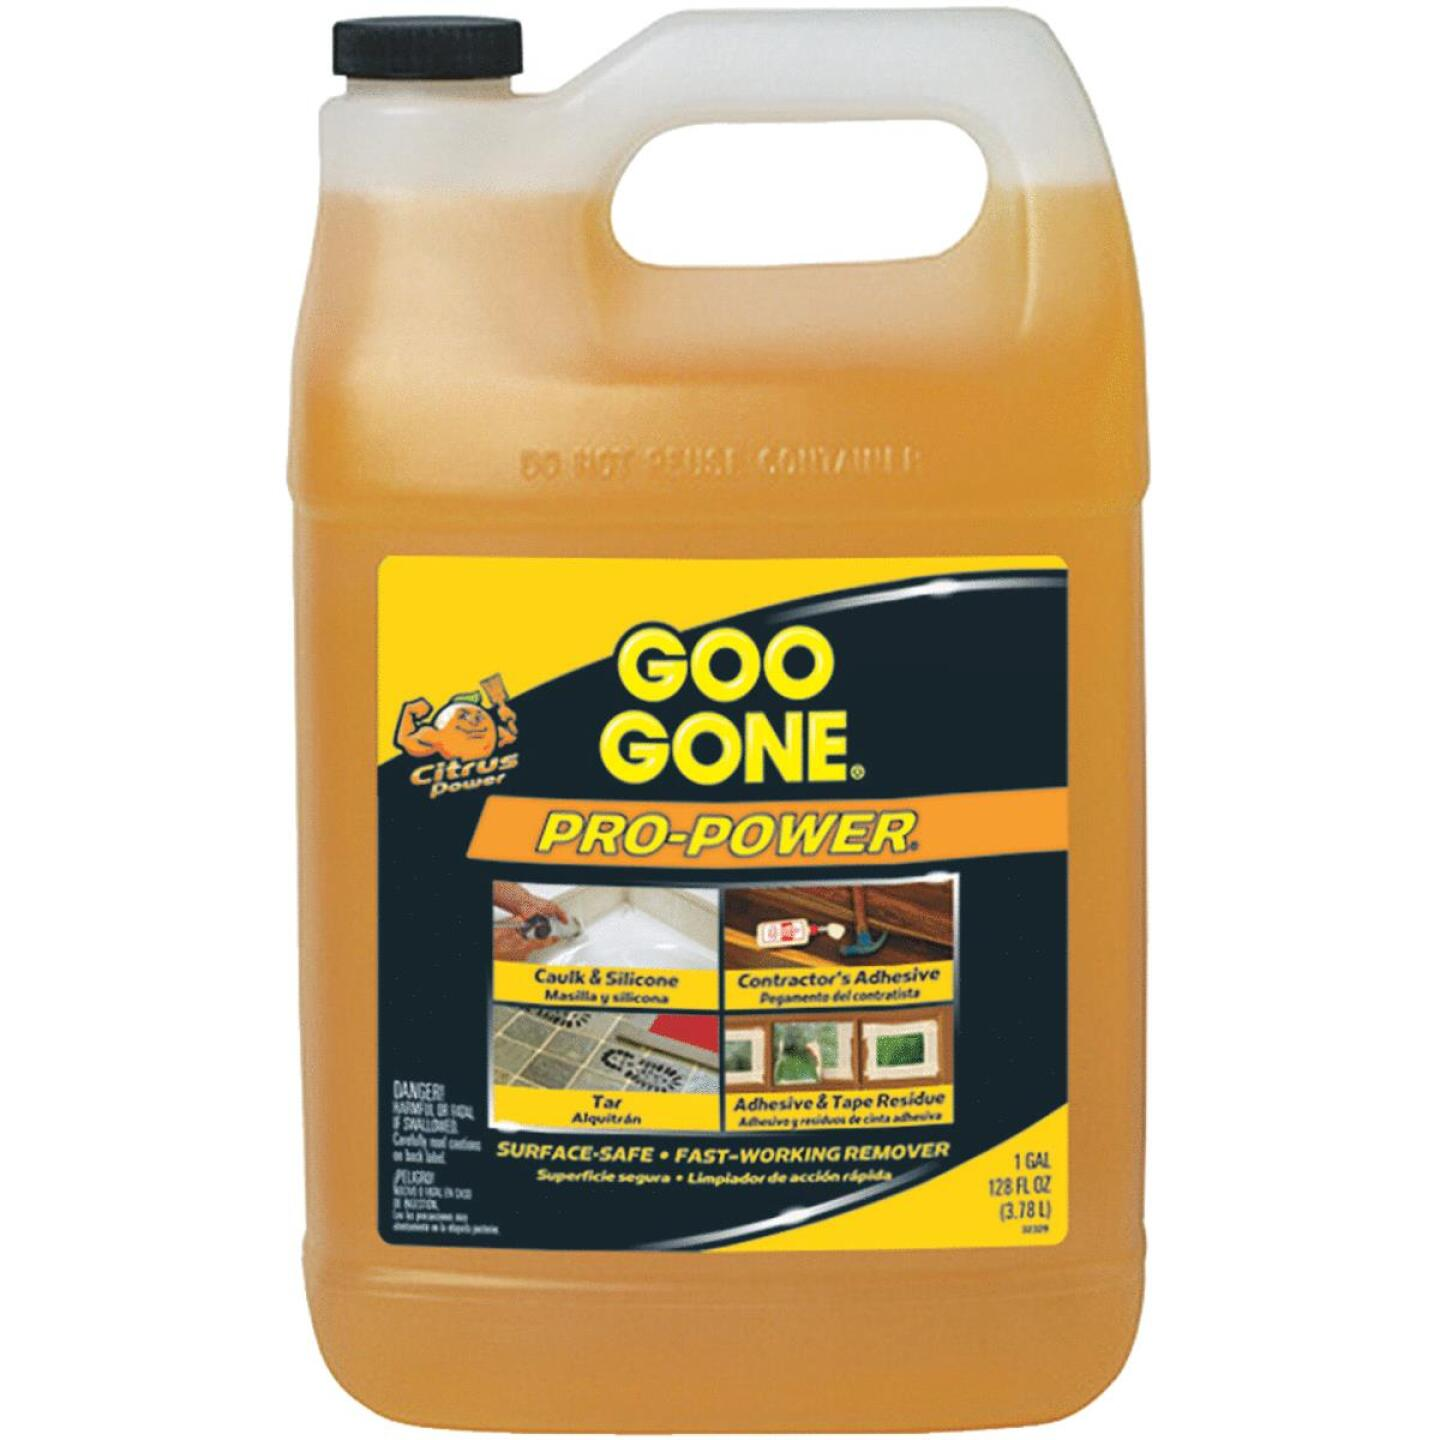 Goo Gone 1 Gal. Pro-Power Adhesive Remover Image 250